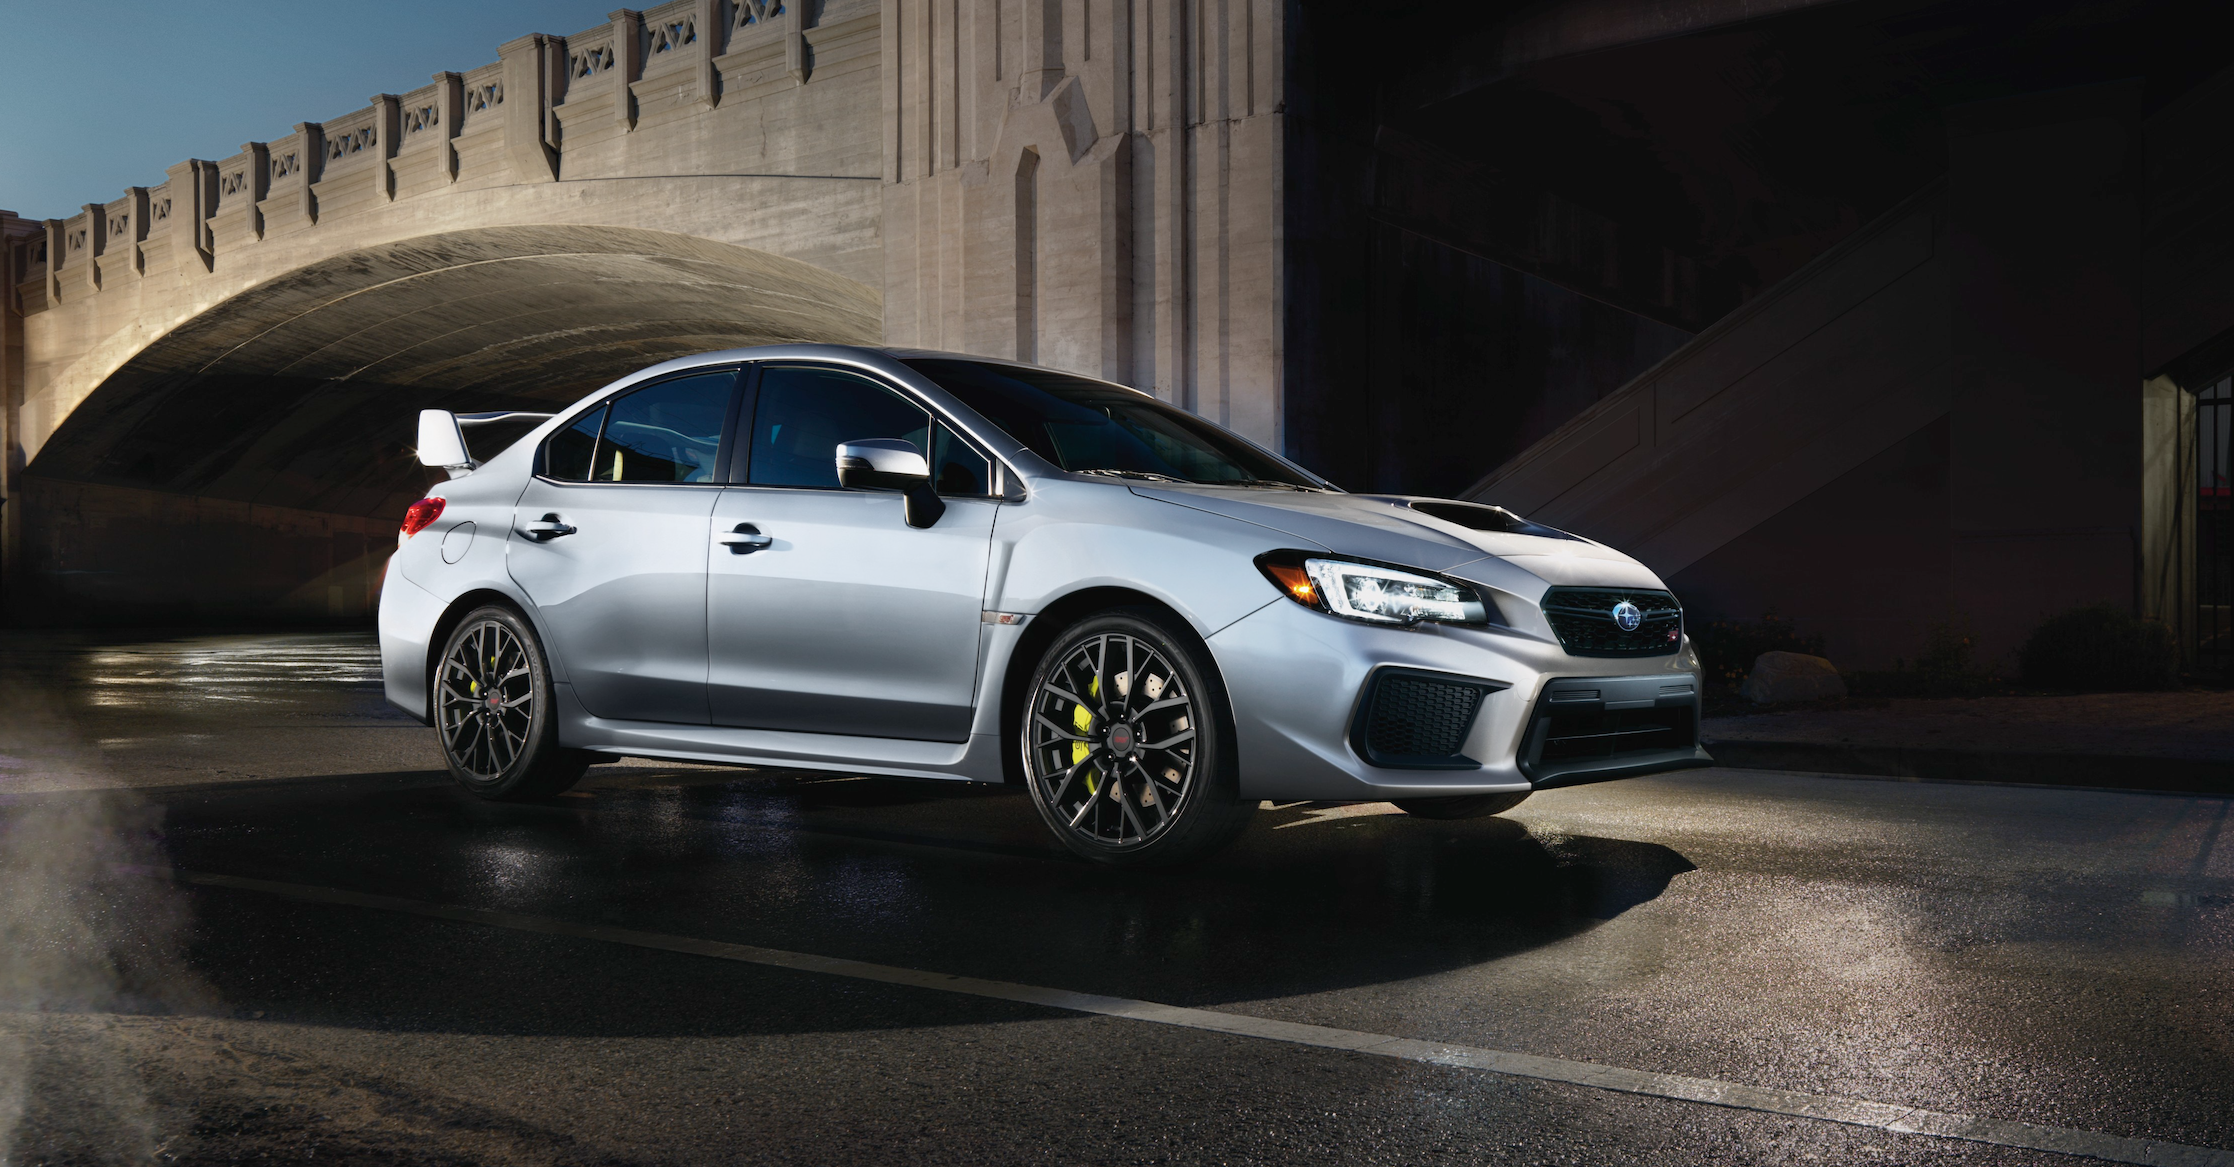 Subaru Wrx Sti Gets More Horsepower For The First Time In A Decade